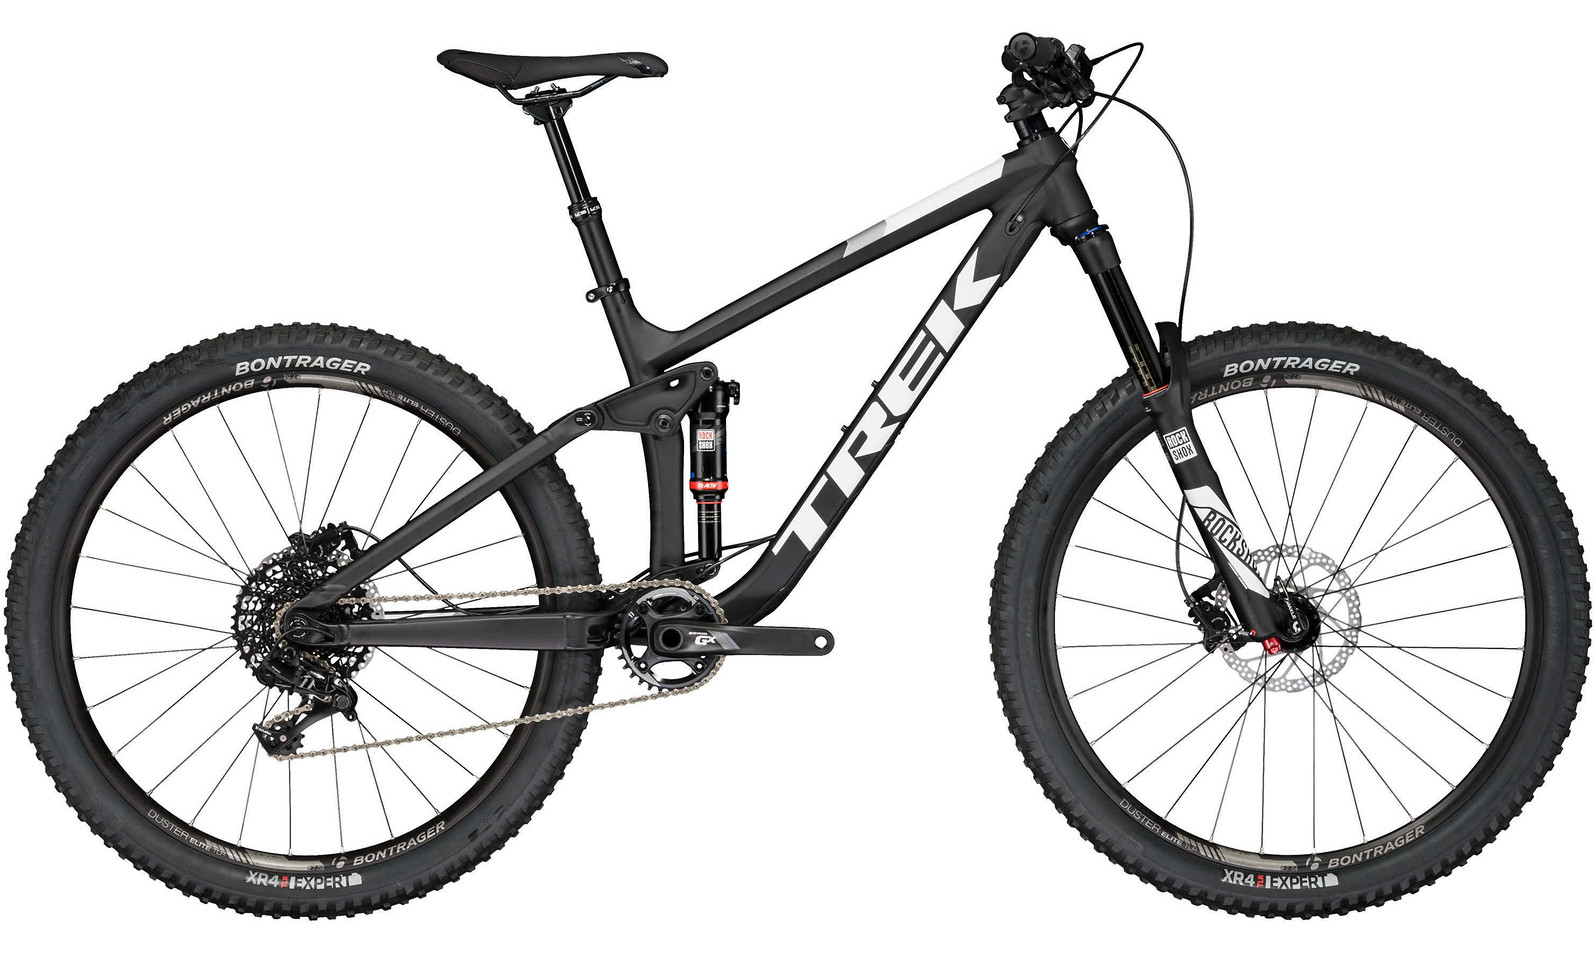 2017 Trek Remedy 8 Bike 2017 Trek Remedy 8